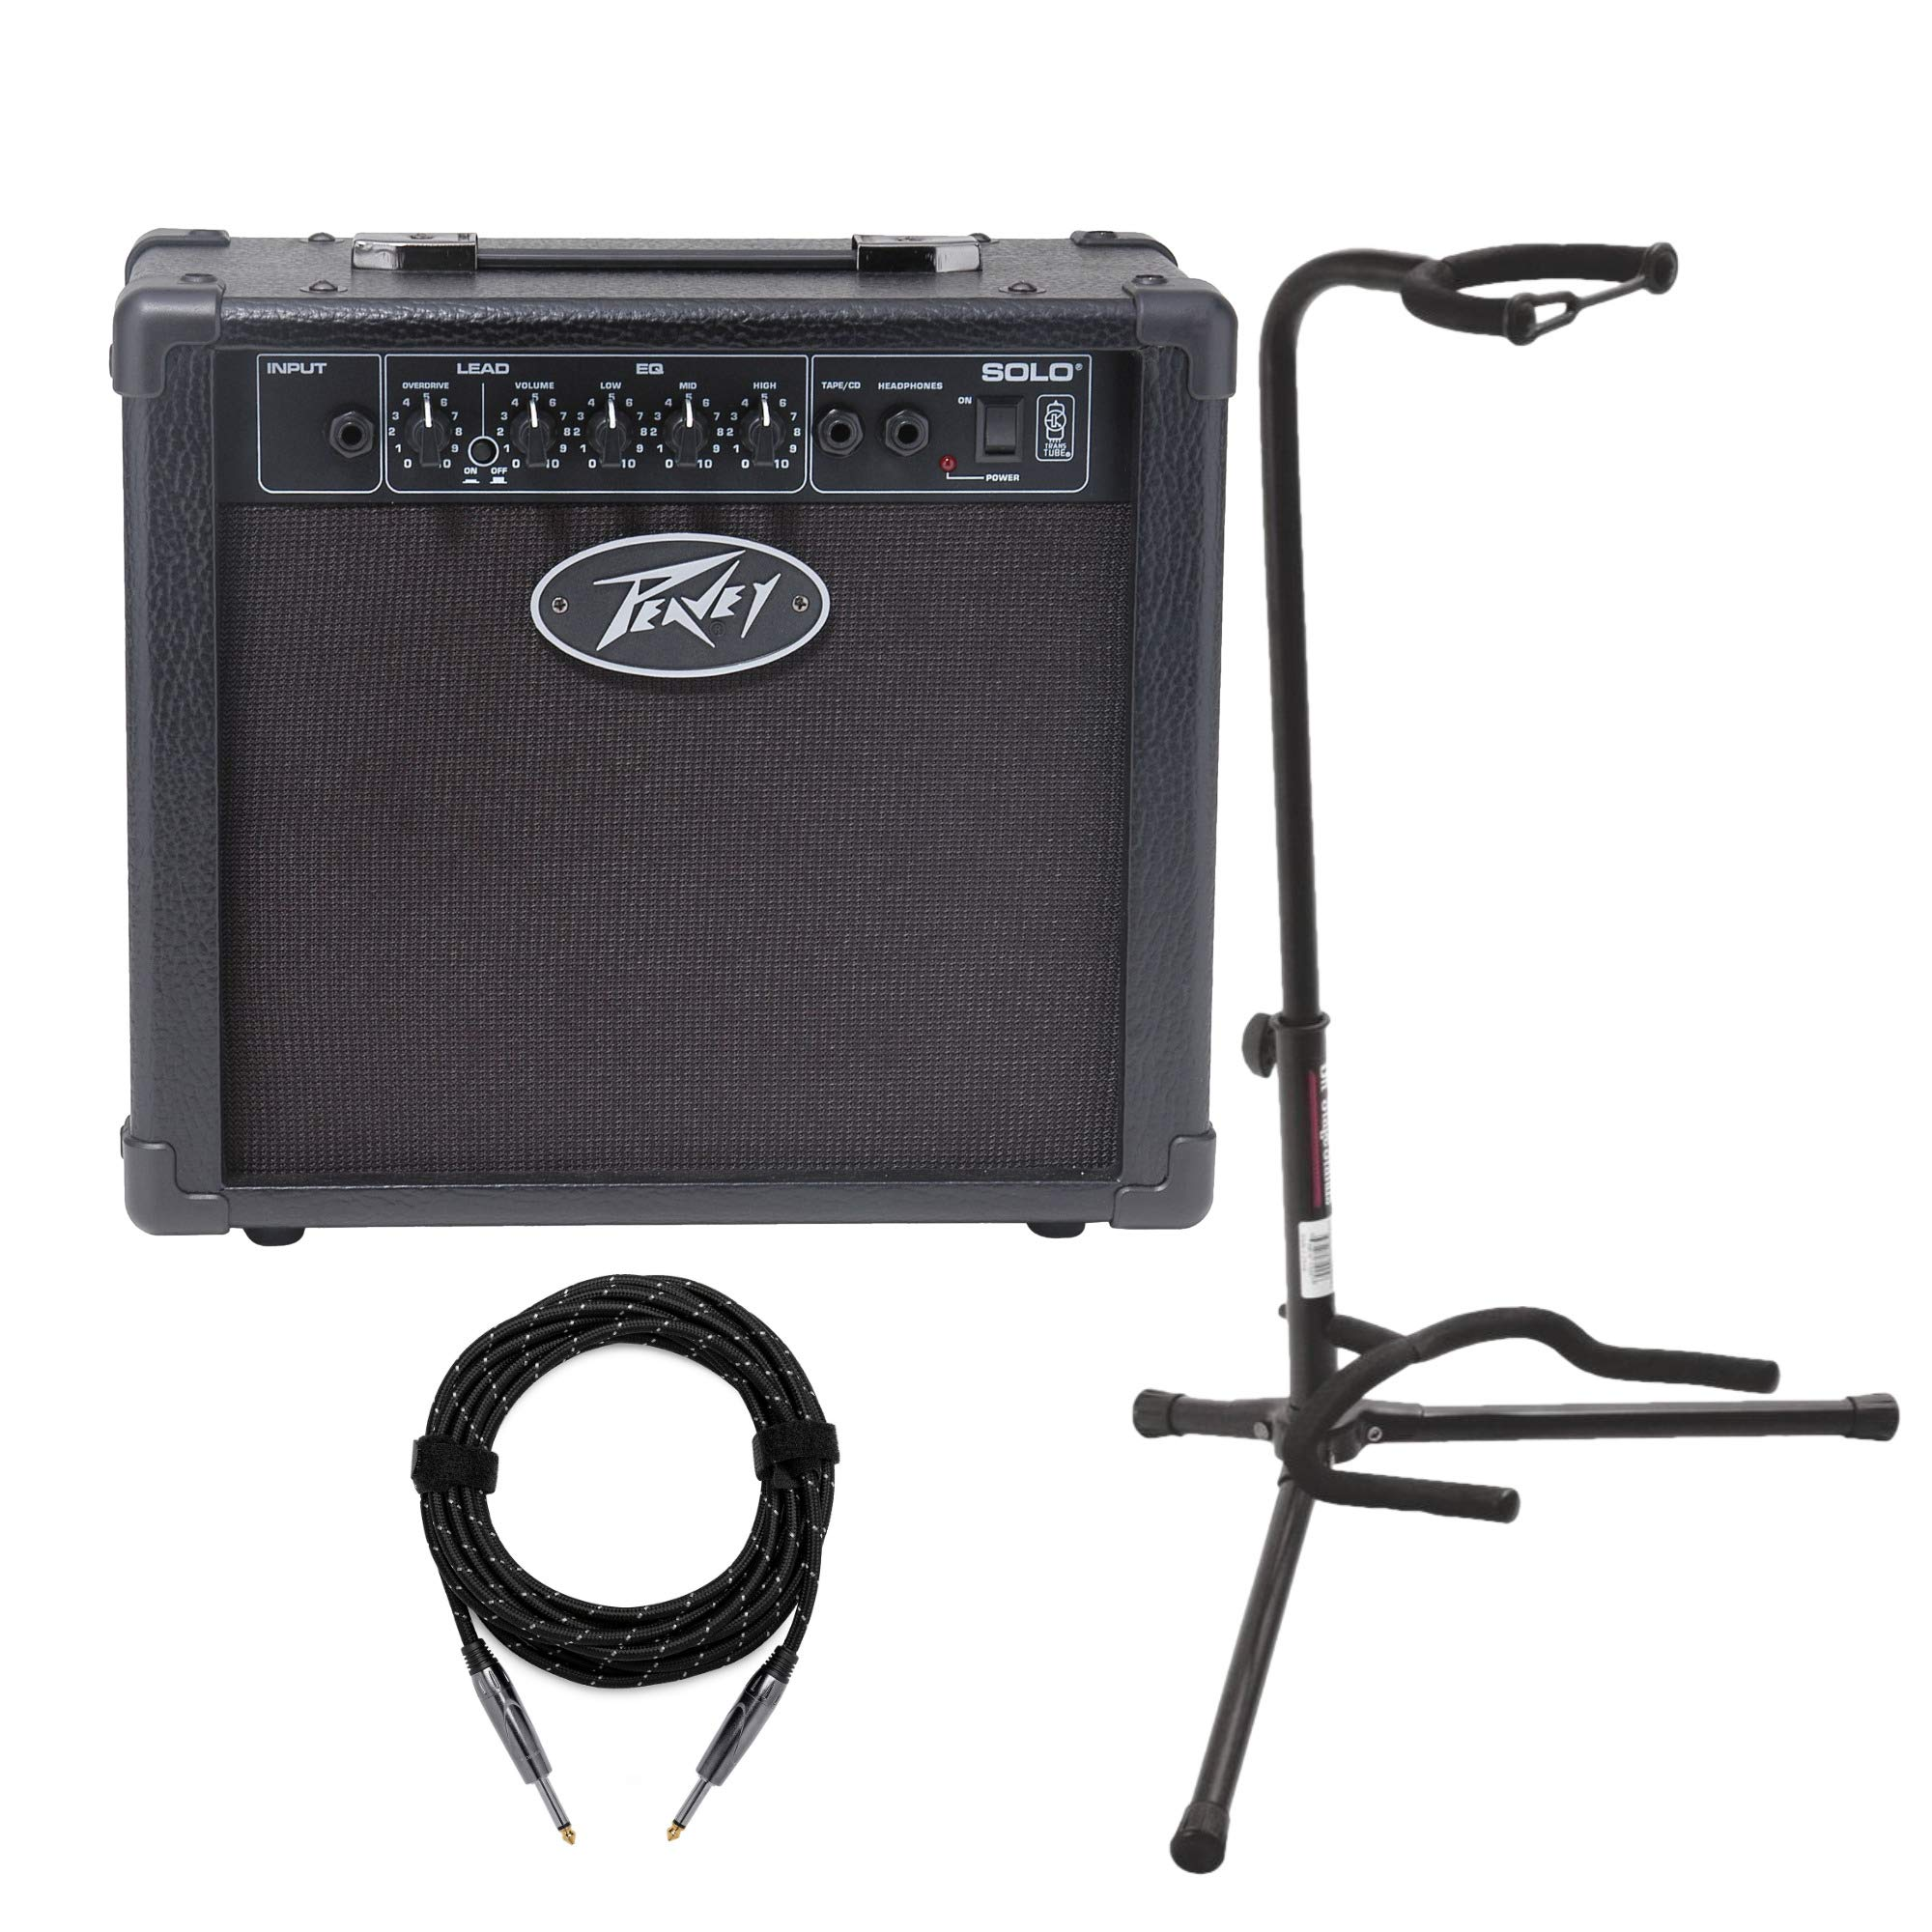 Peavey Solo 12W Transtube Electric Guitar Amplifier with Guitar Stand and Cable by Peavey